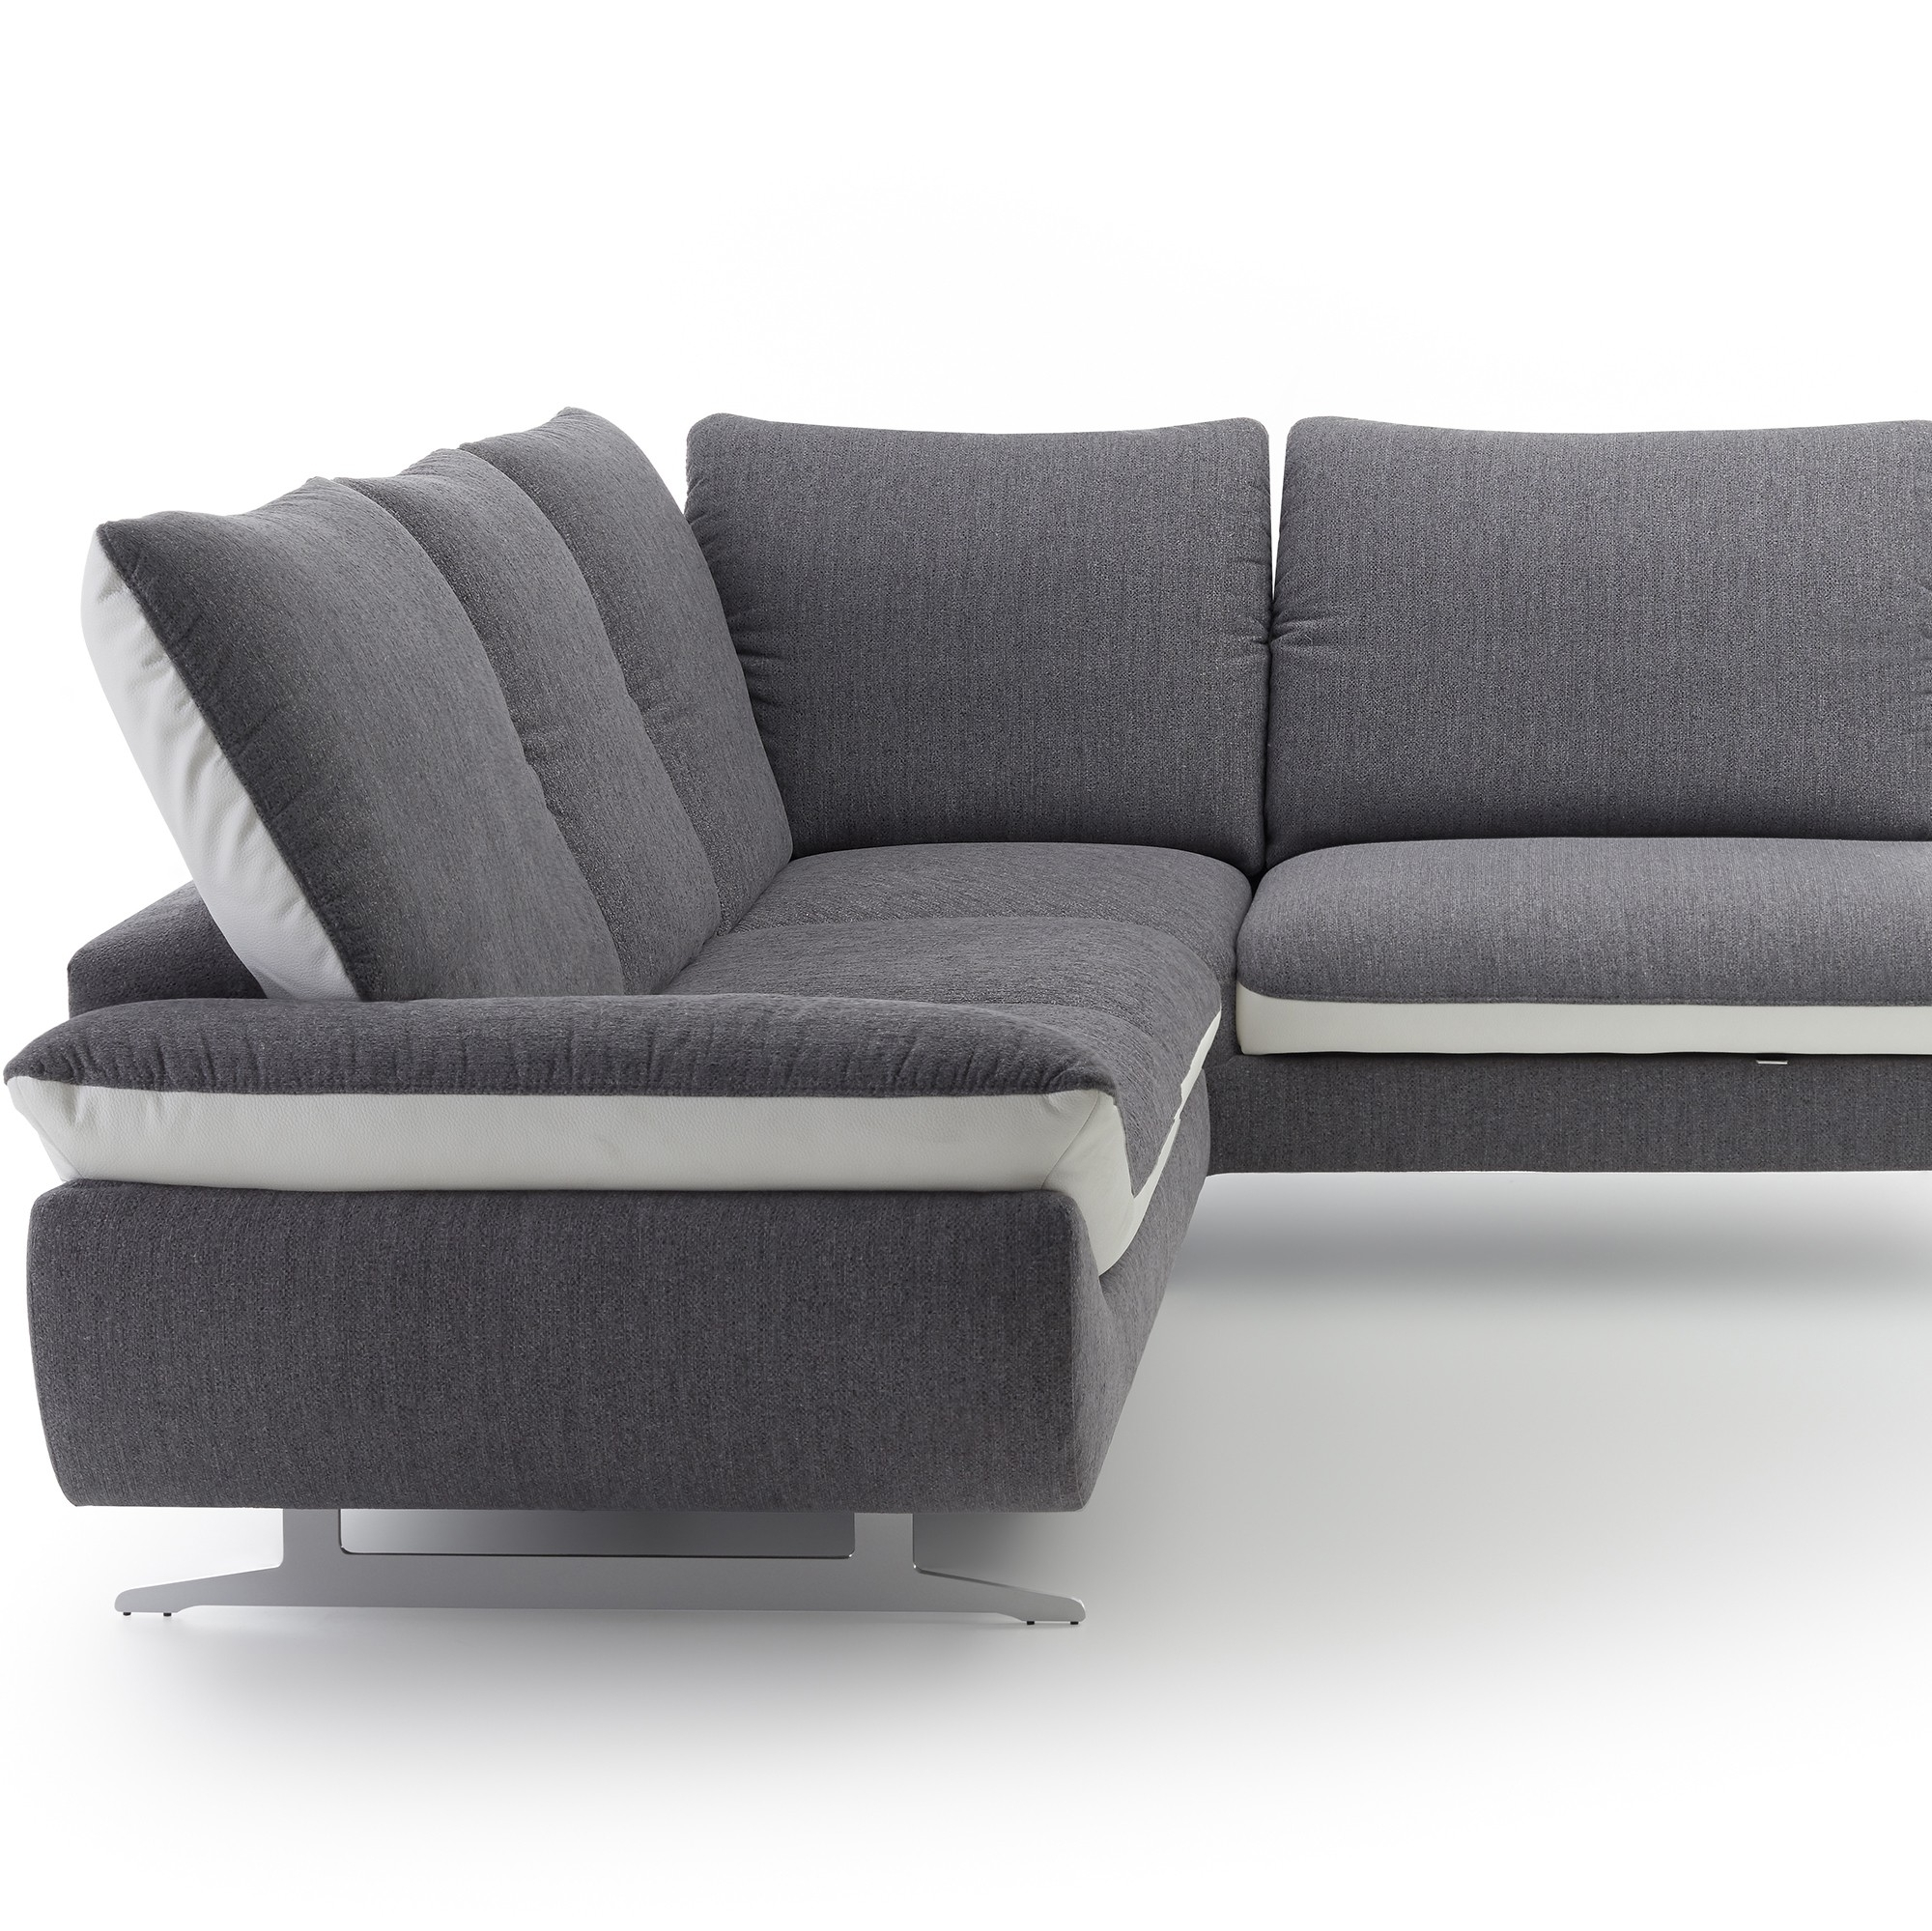 Most Recently Released Trinidad And Tobago Sectional Sofas Intended For Il Decor Boston: Sectional Sofas (View 18 of 20)